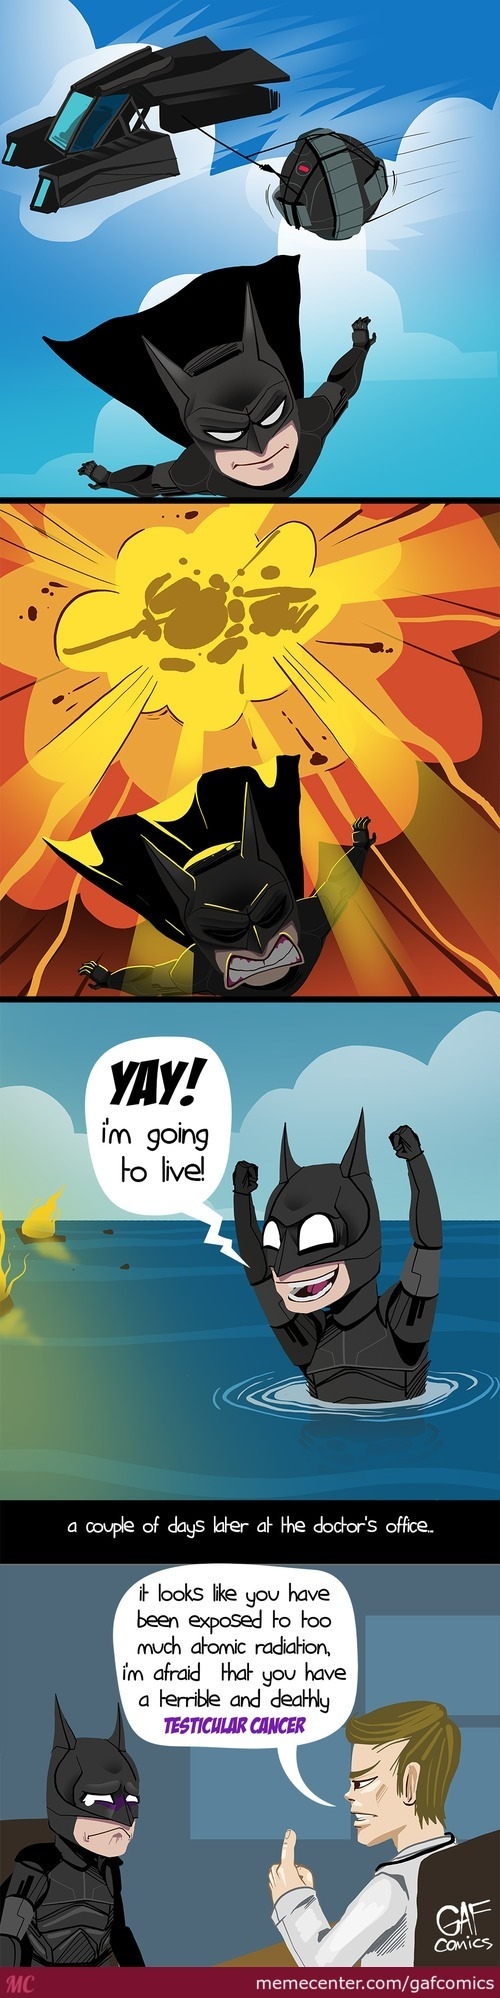 The Unknown Truth About The  Dark Knight Rises